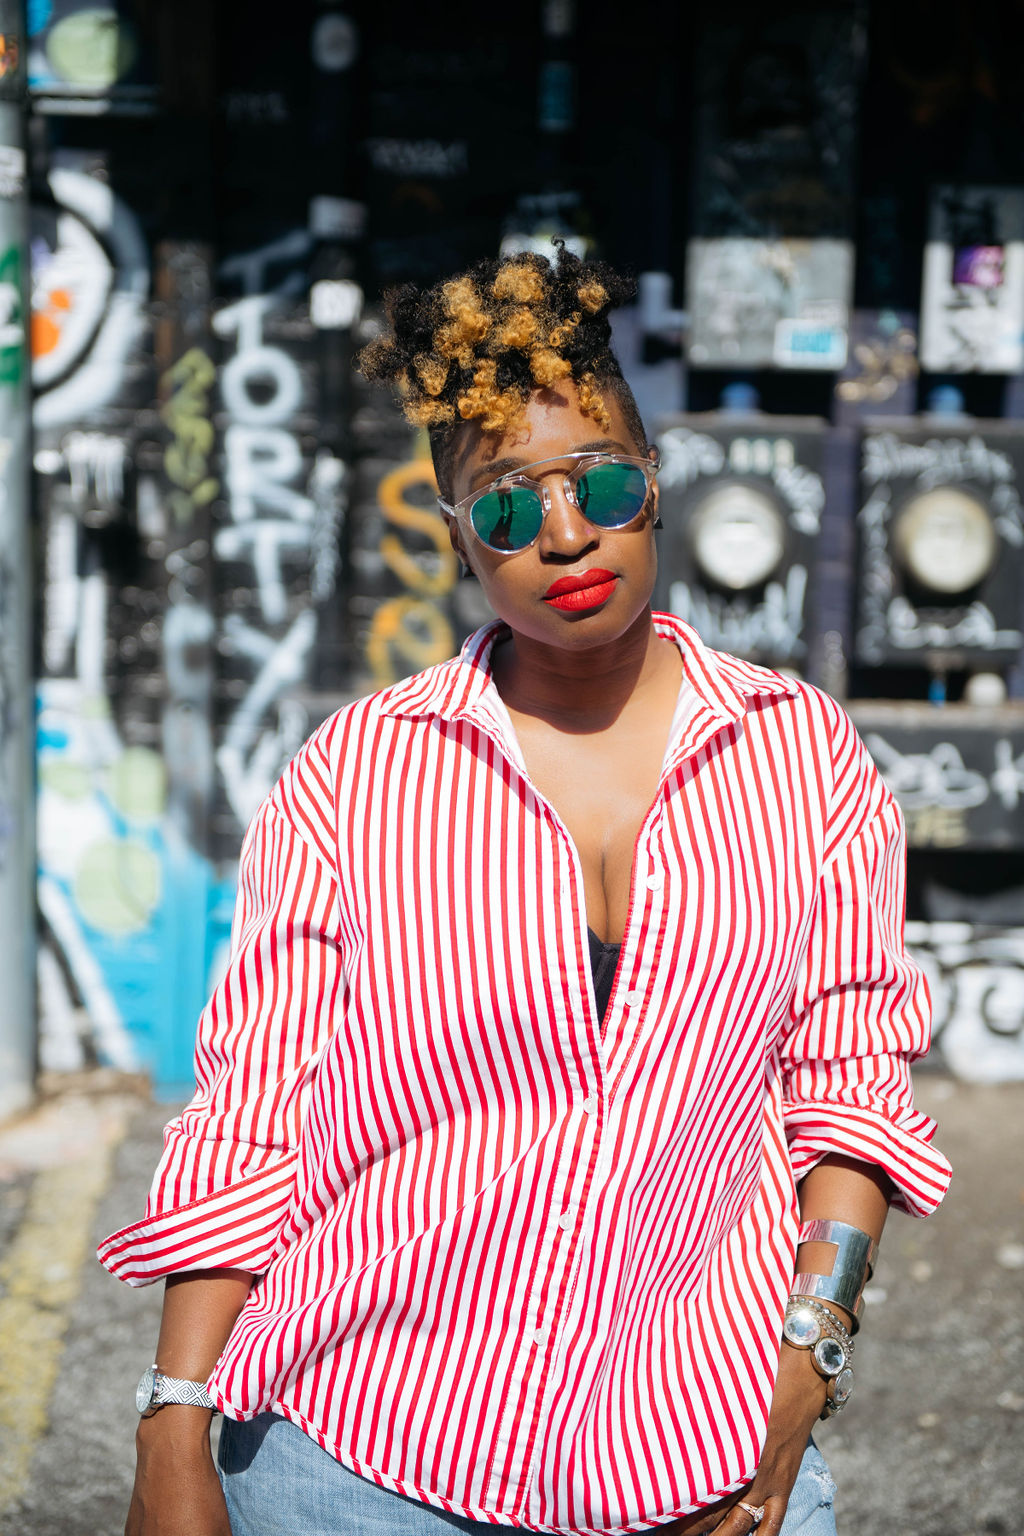 MEET MELODIE - Get to know the fashionable stylist behind your favorite looks!